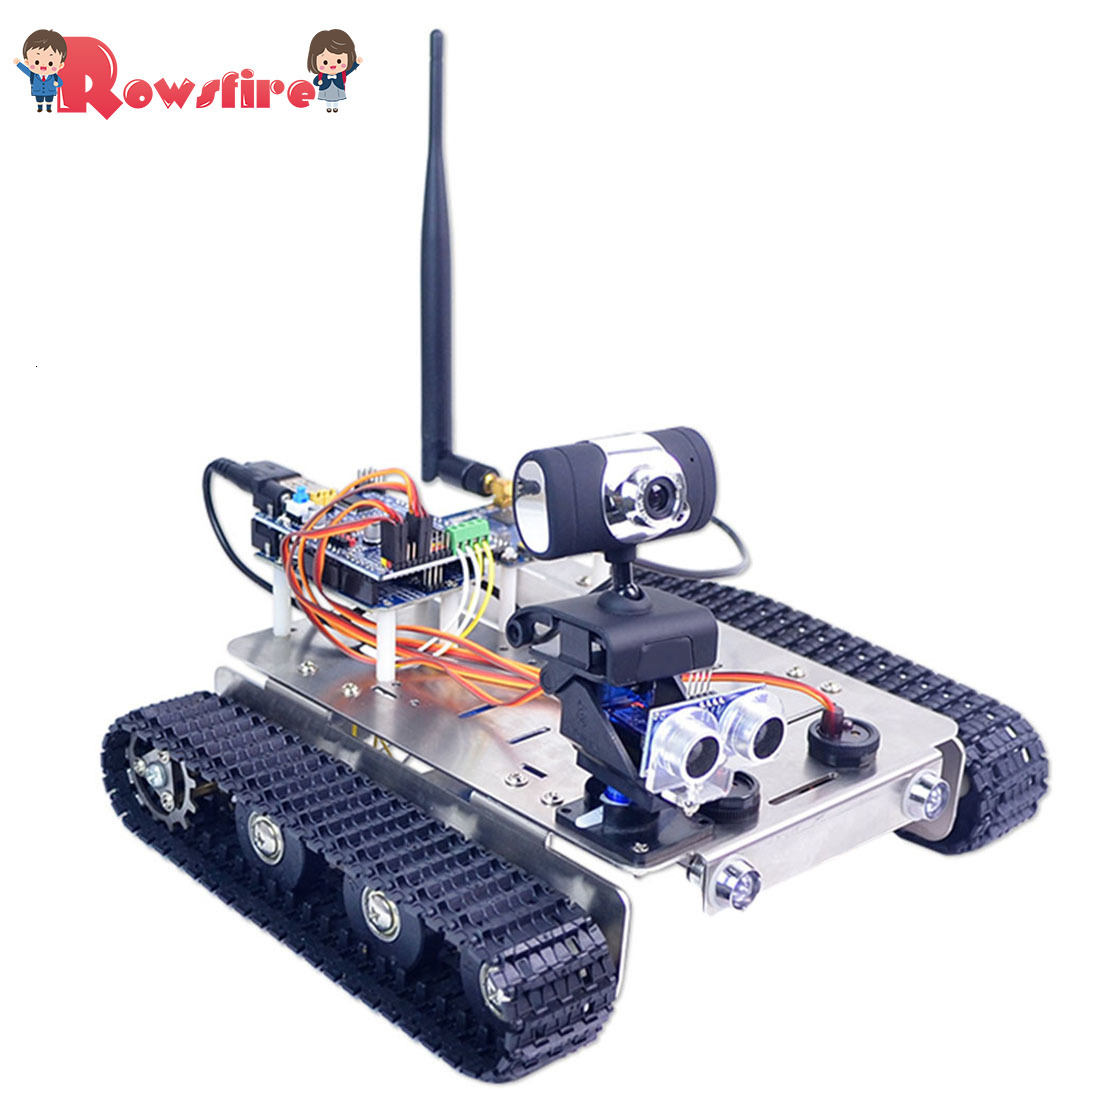 Free Programmable Robot DIY Wifi Stainless Steel Chassis Track Tank Car With Graphic Programming XR BLOCK Linux Standard Version